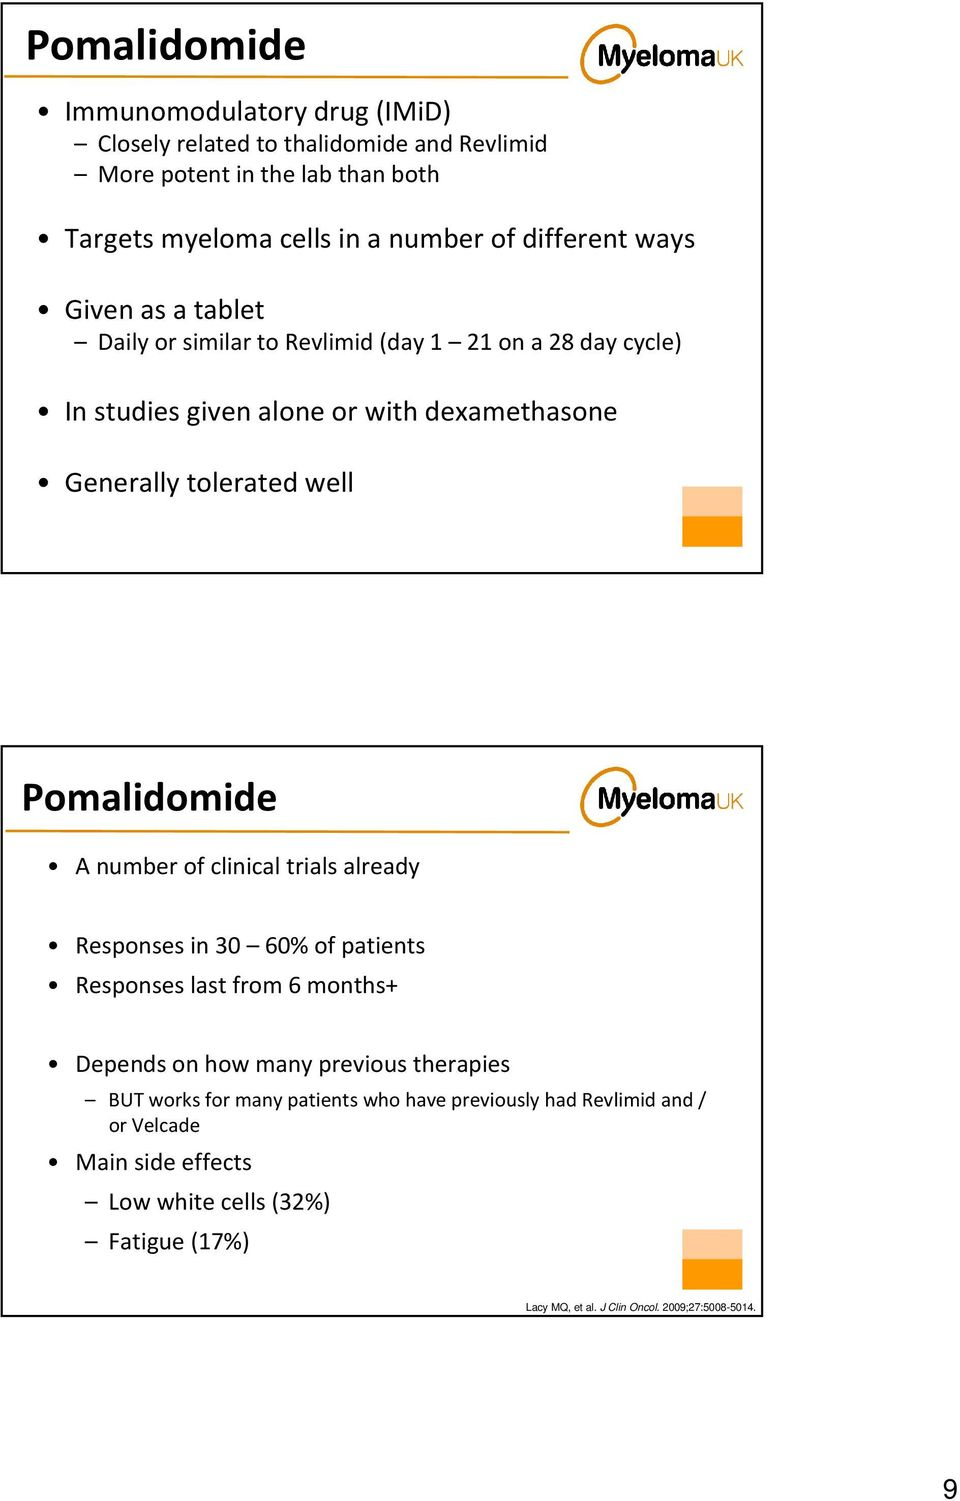 Pomalidomide A number of clinical trials already Responses in 30 60% of patients Responses last from 6 months+ Depends on how many previous therapies BUT works